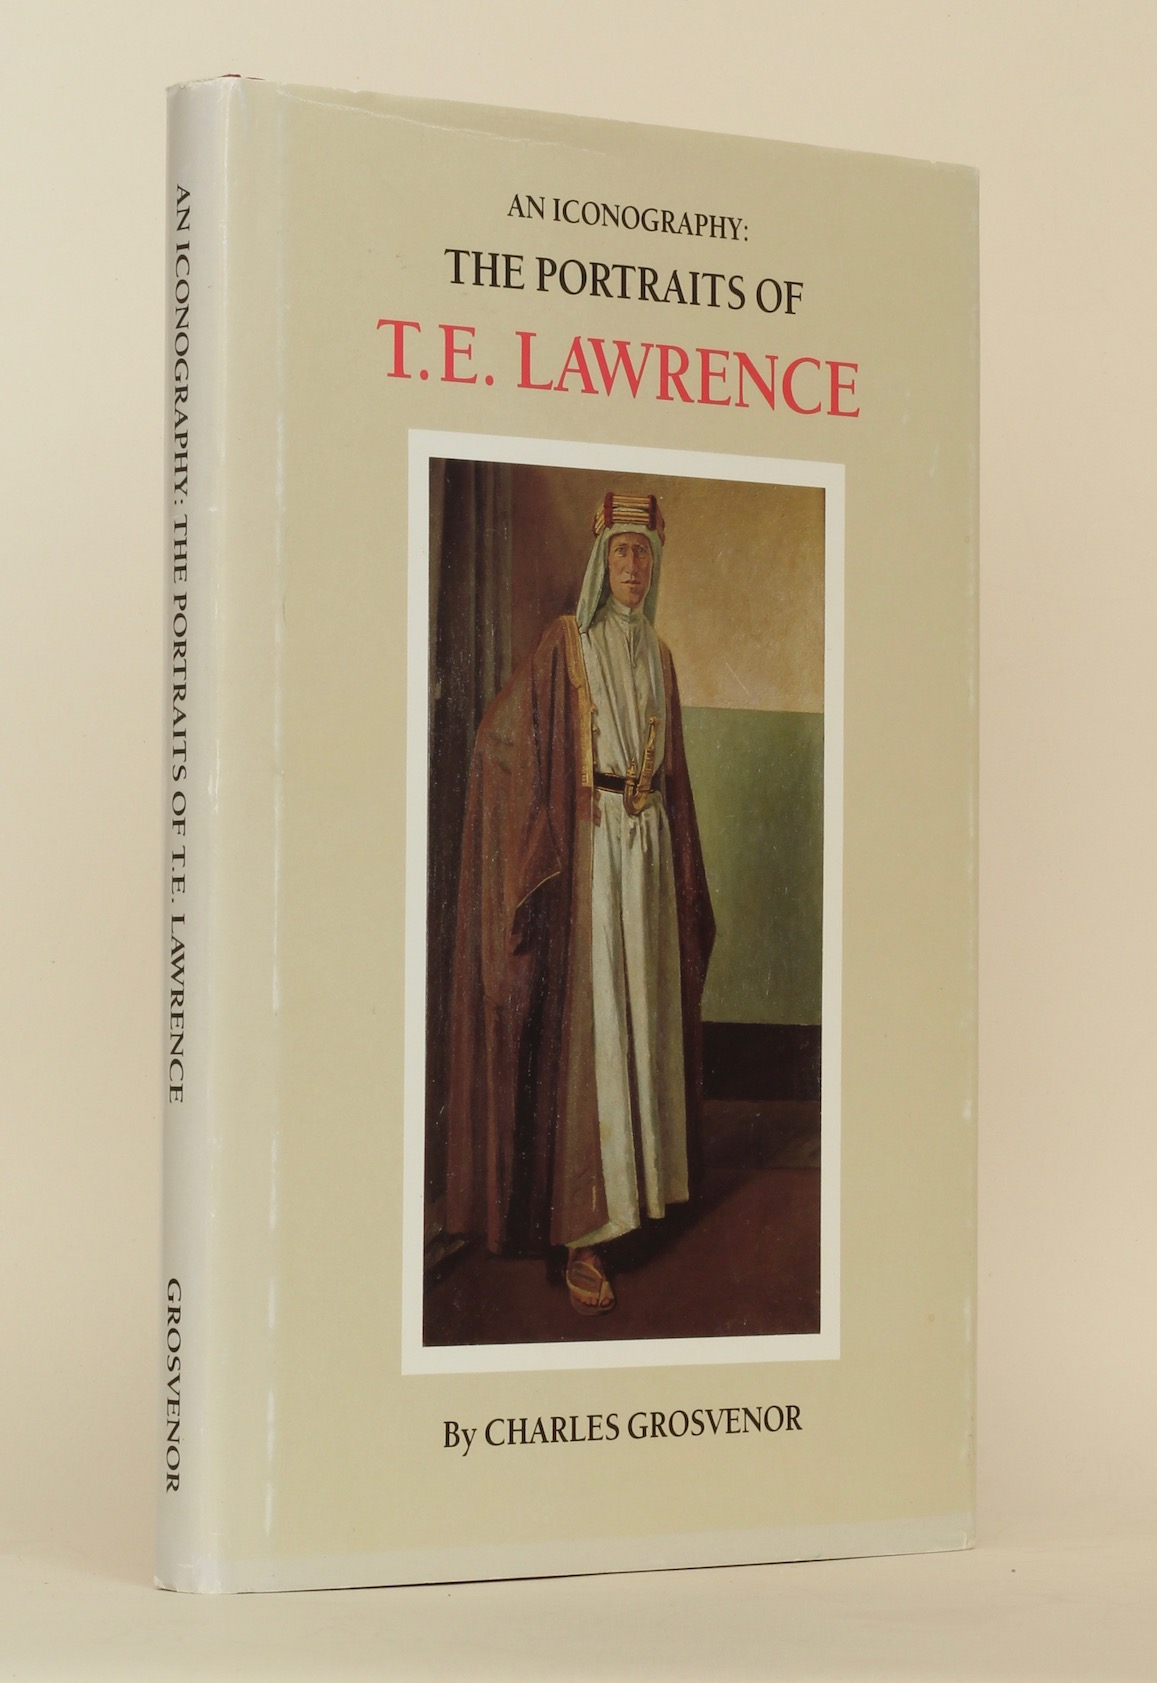 C.M. Grosvenor: An Iconography: The Portraits of T.E. Lawrence, 1988 – rev. 2nd ed. from the library of Jeremy Wilson. £95